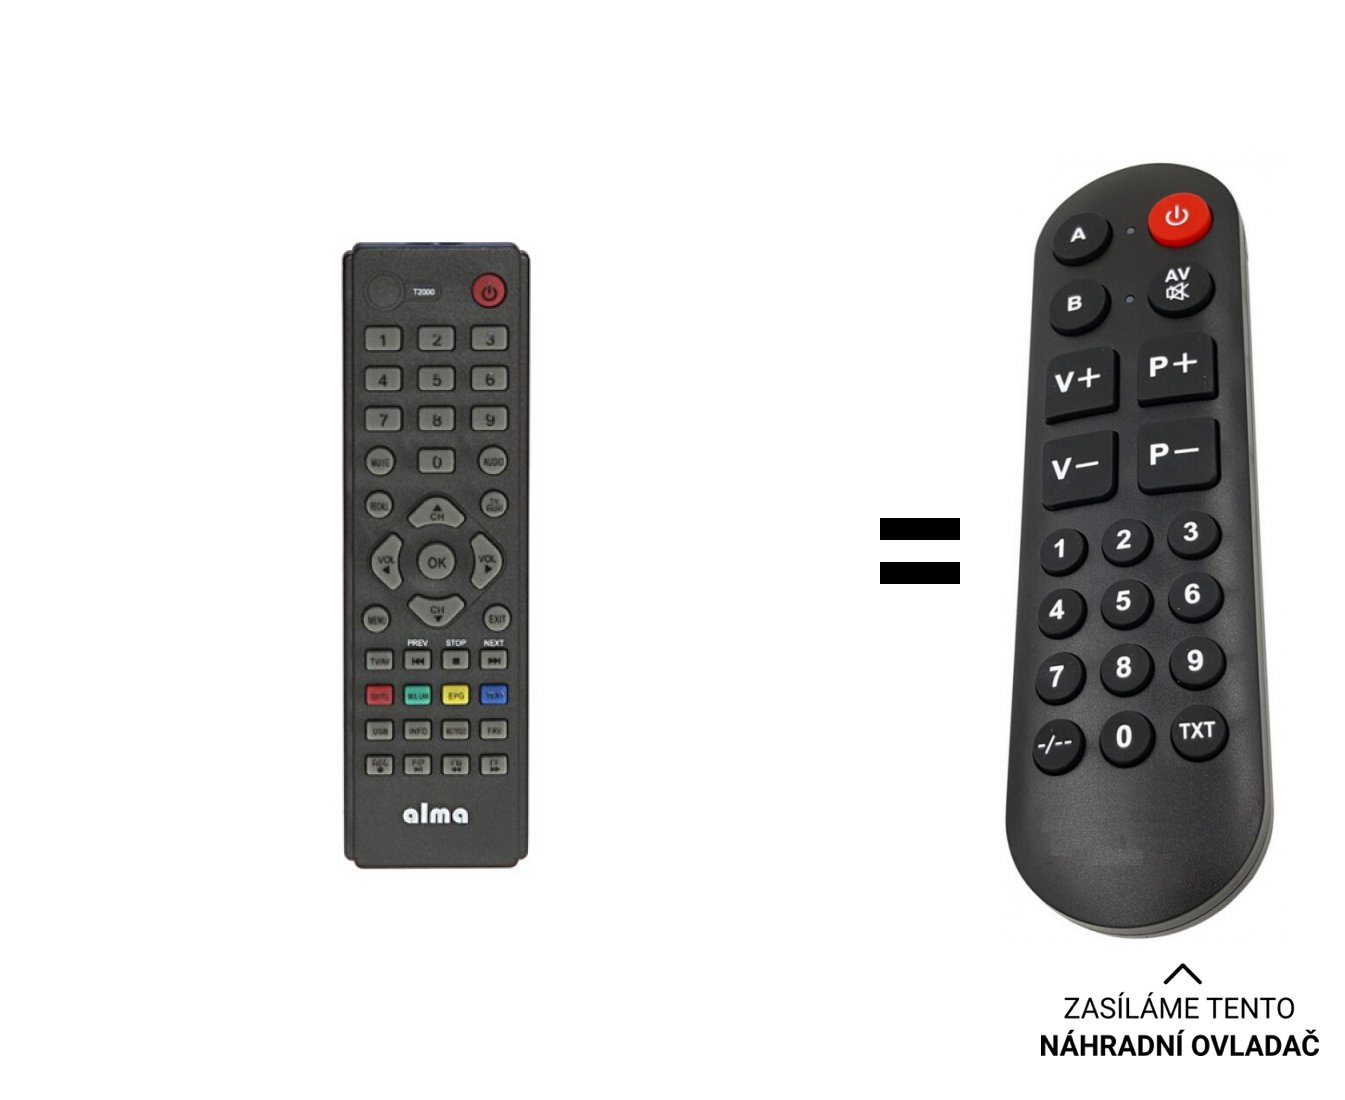 Alma T2000 replacement remote control for seniors